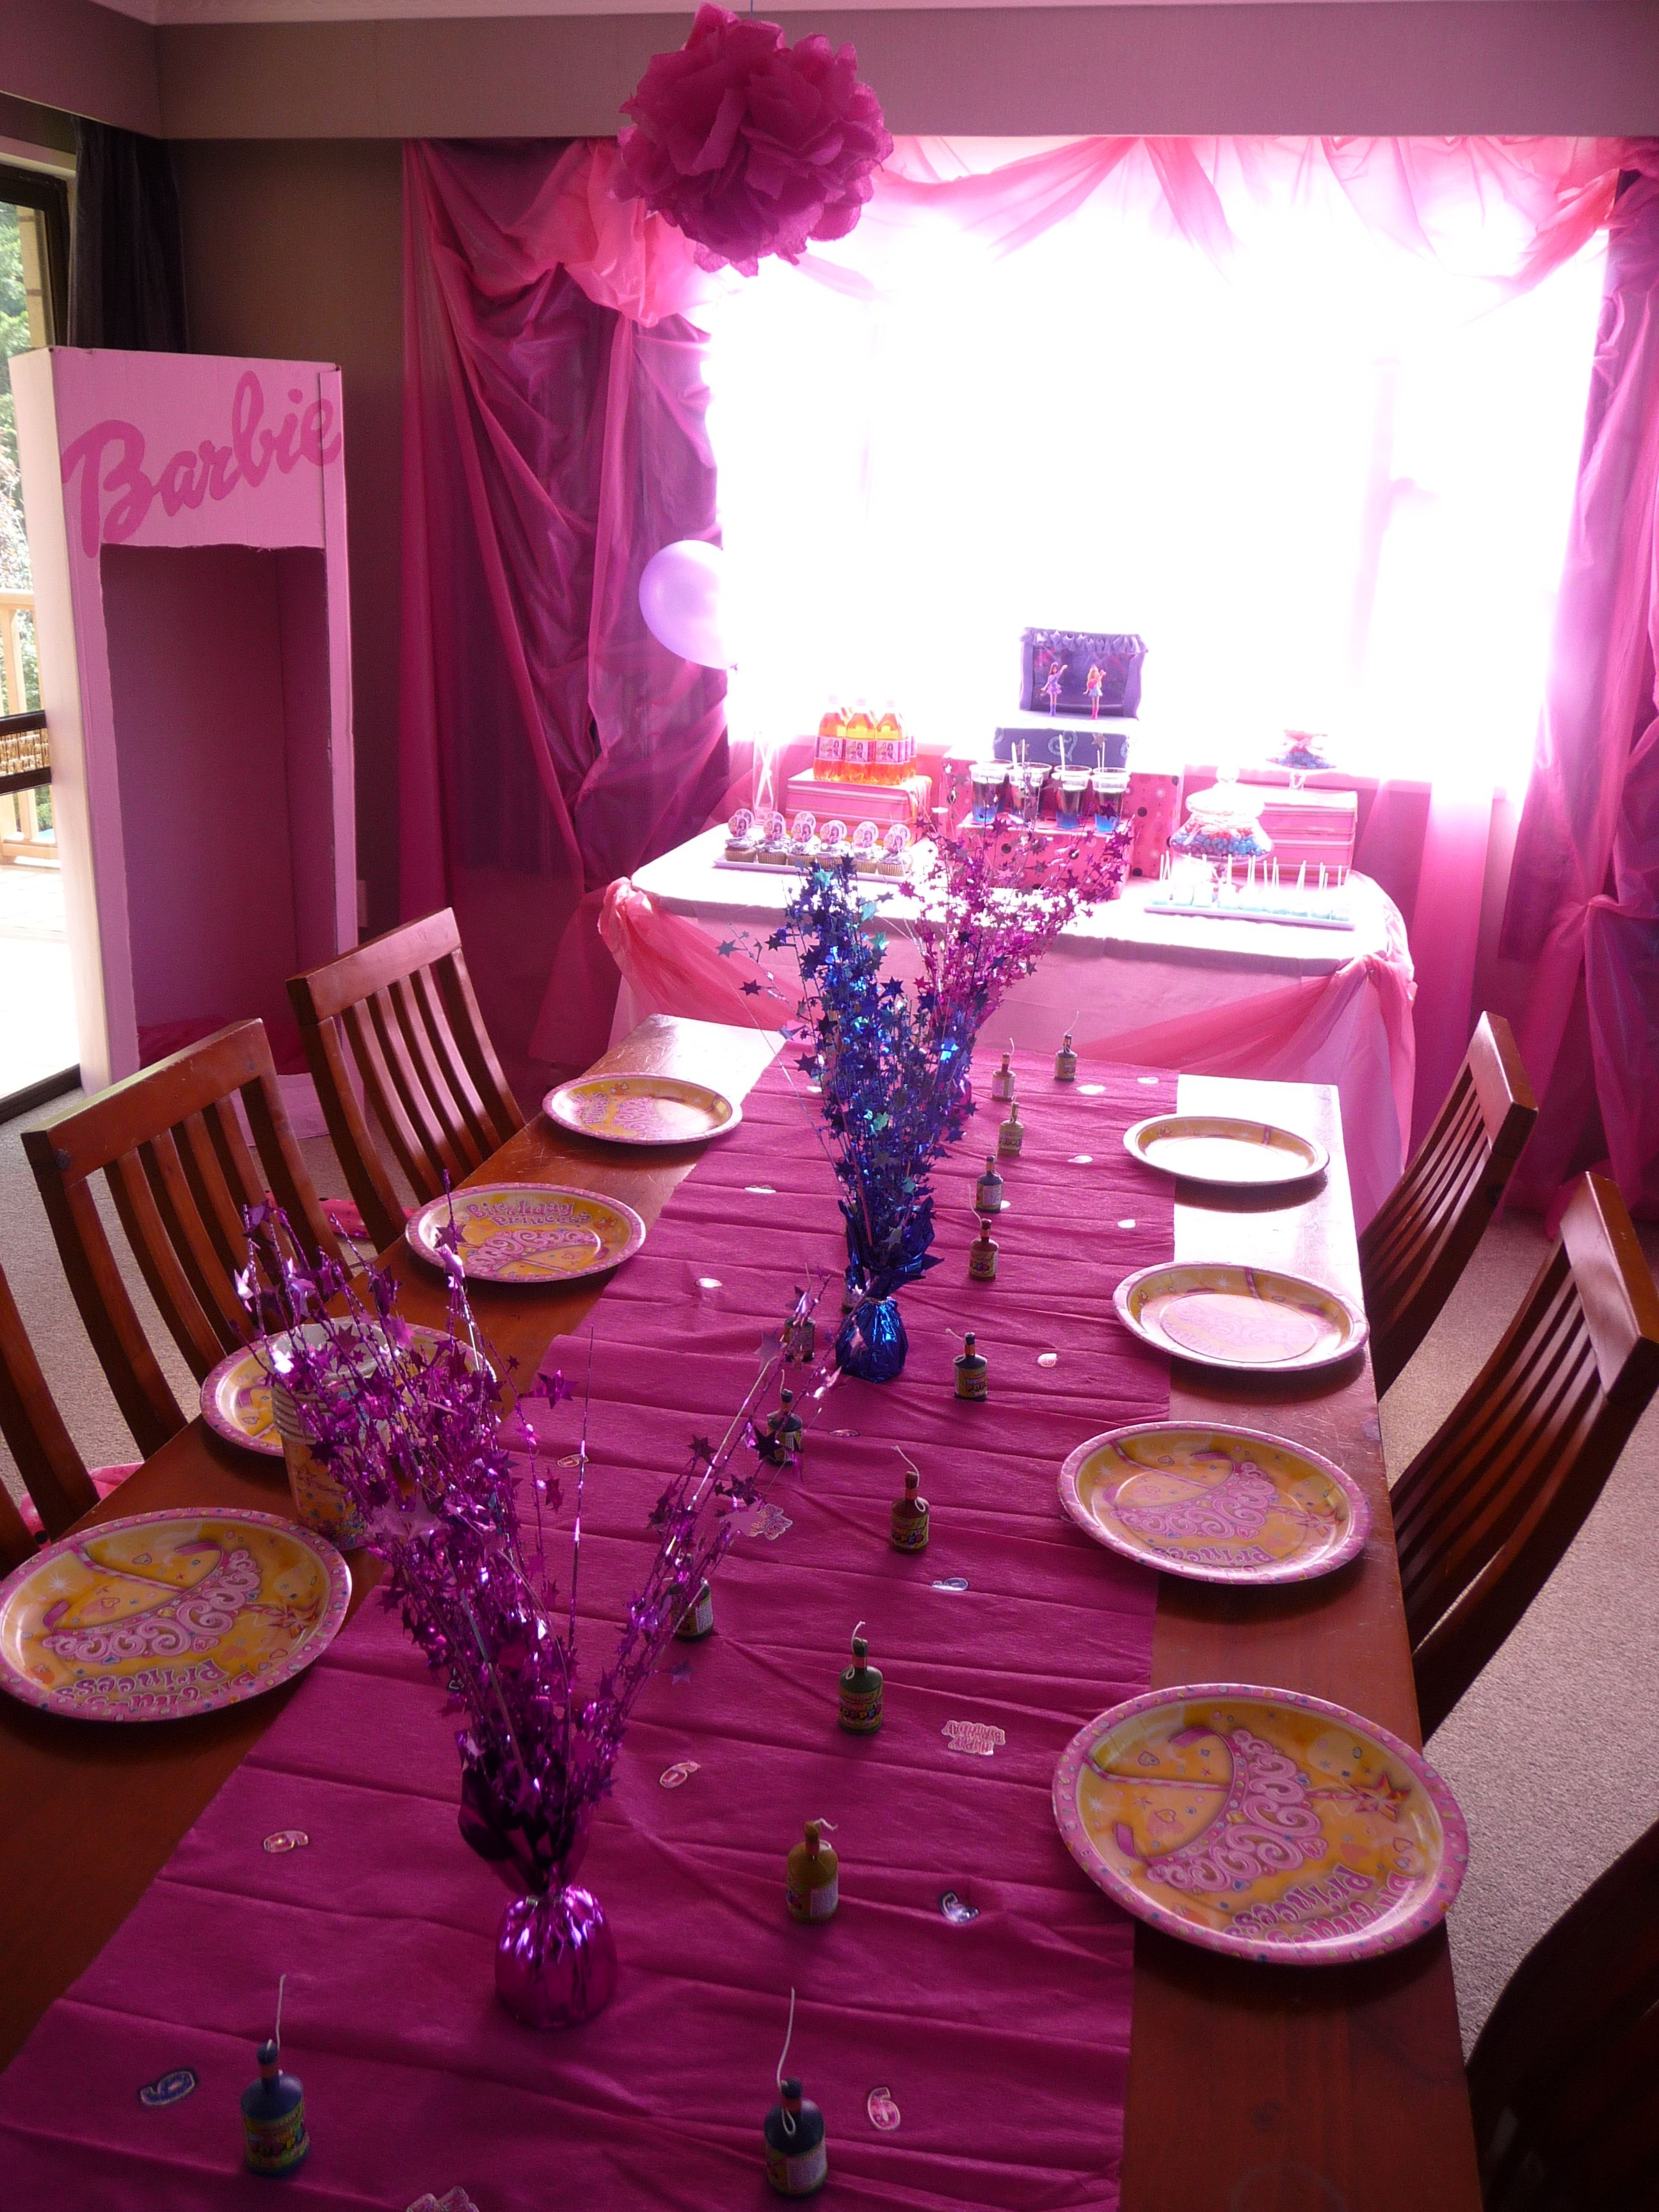 Barbie Princess & the Popstar Party from http://www.facebook.com/thejenkinsons#!/pages/Rachs-Cakes-Balclutha/142863472432177?fref=ts